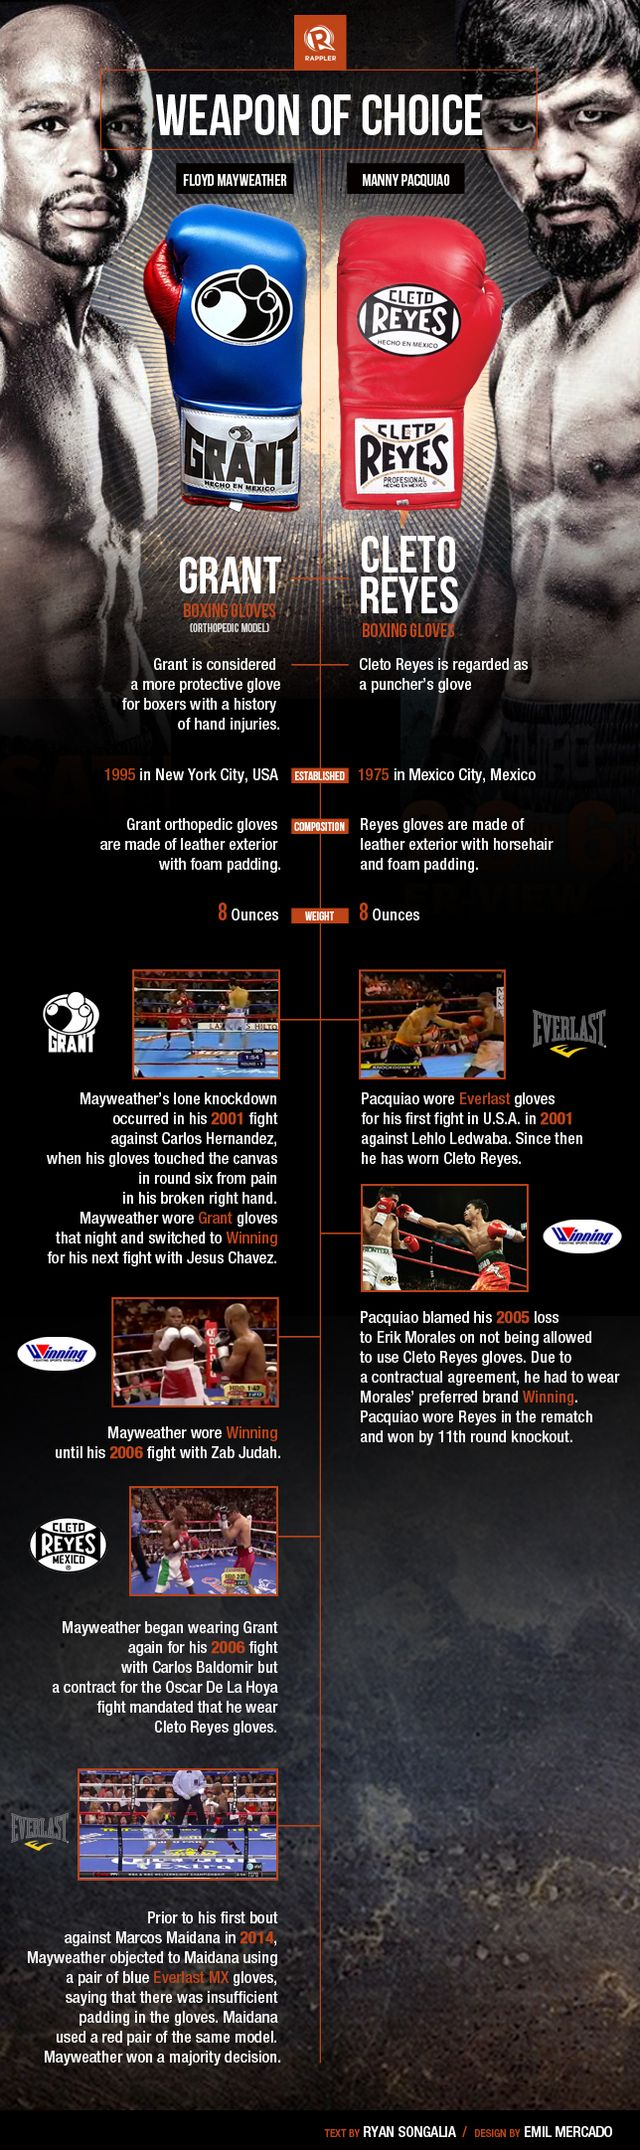 Floyd Mayweather Jr. vs. Manny Pacquiao - Weapon of choice infographic